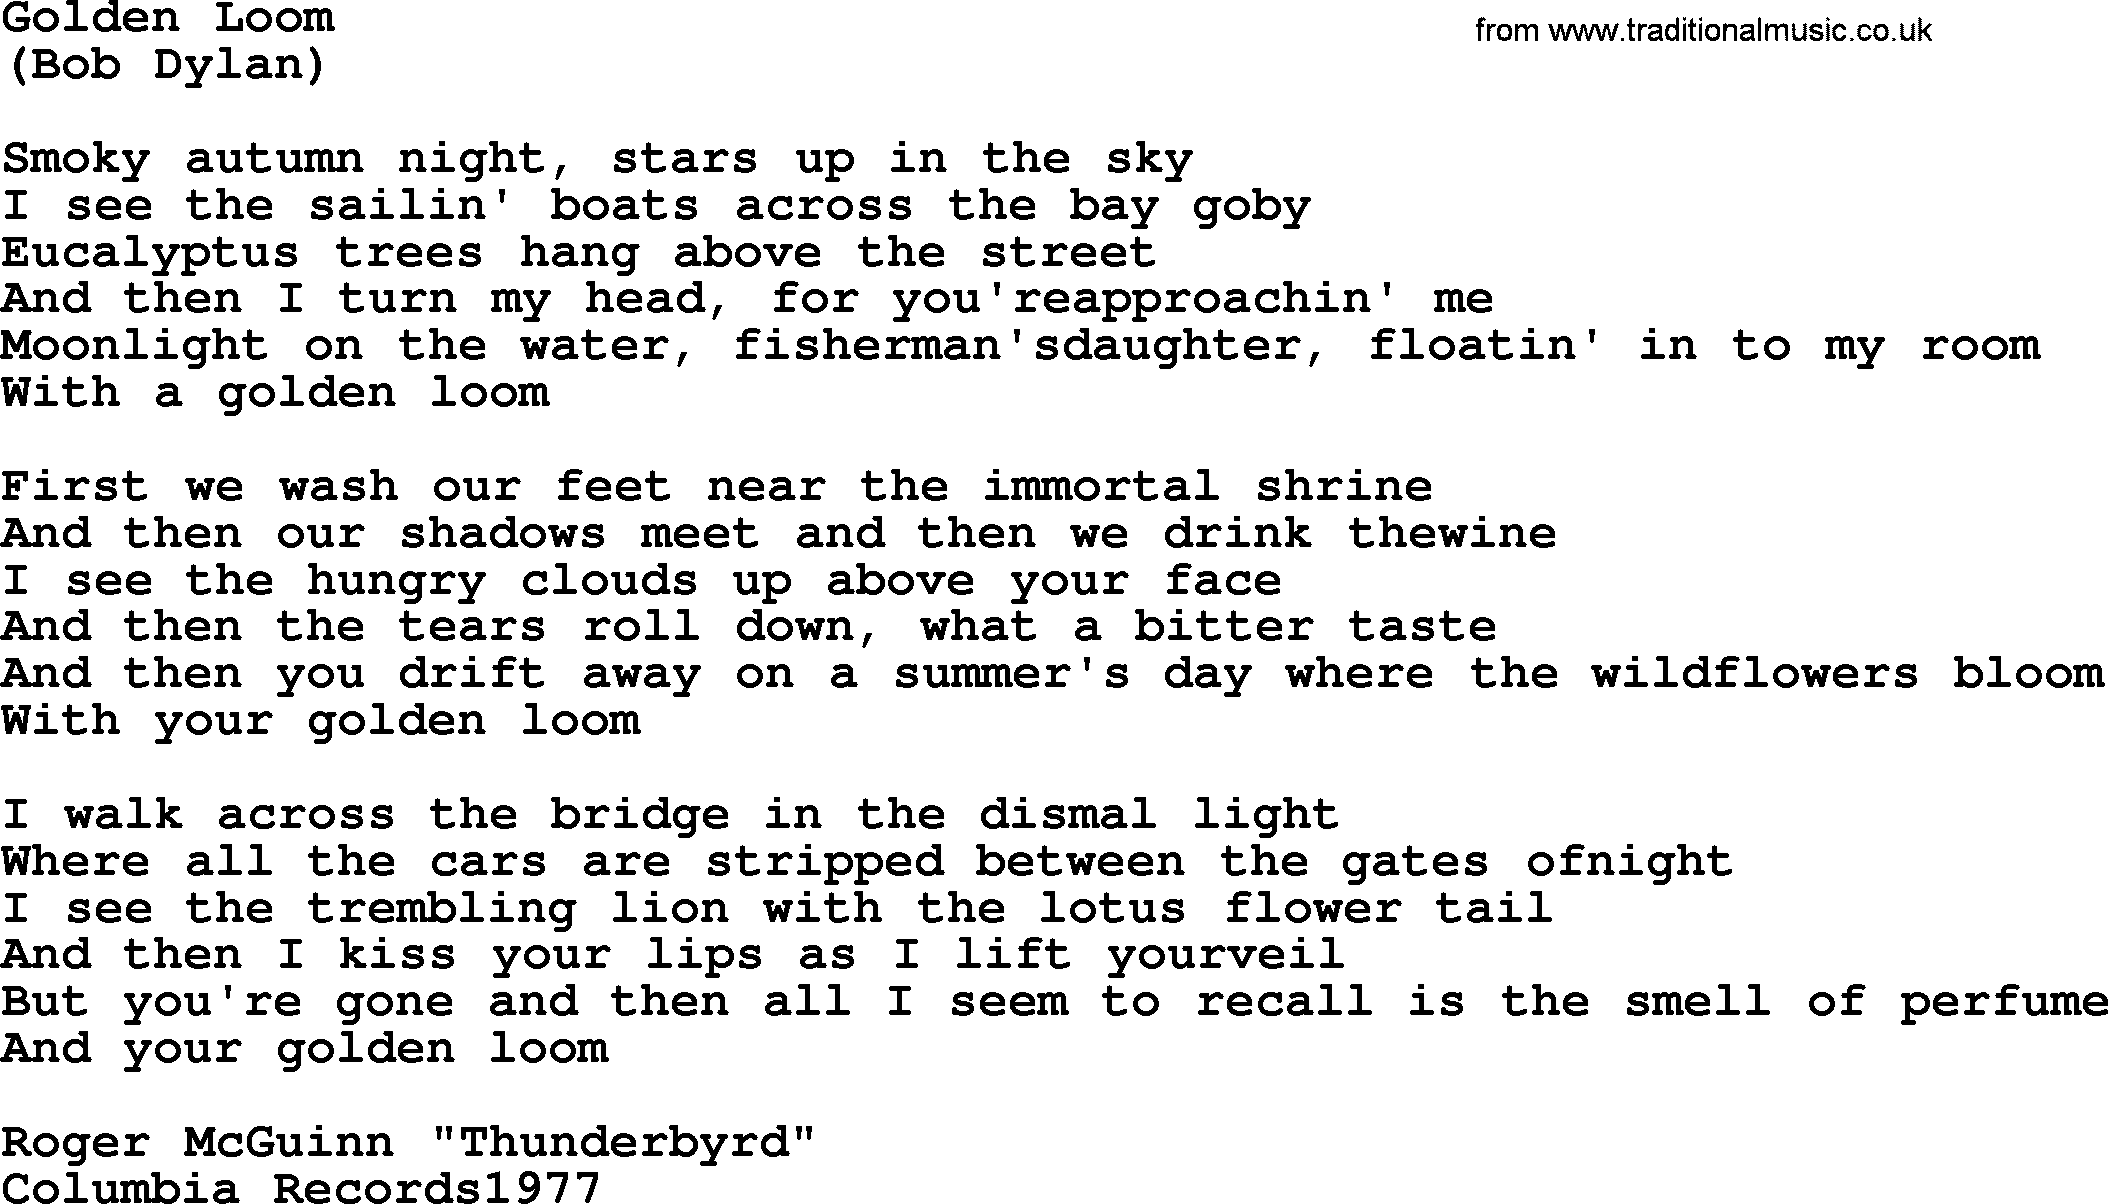 Golden Loom By The Byrds Lyrics With Pdf